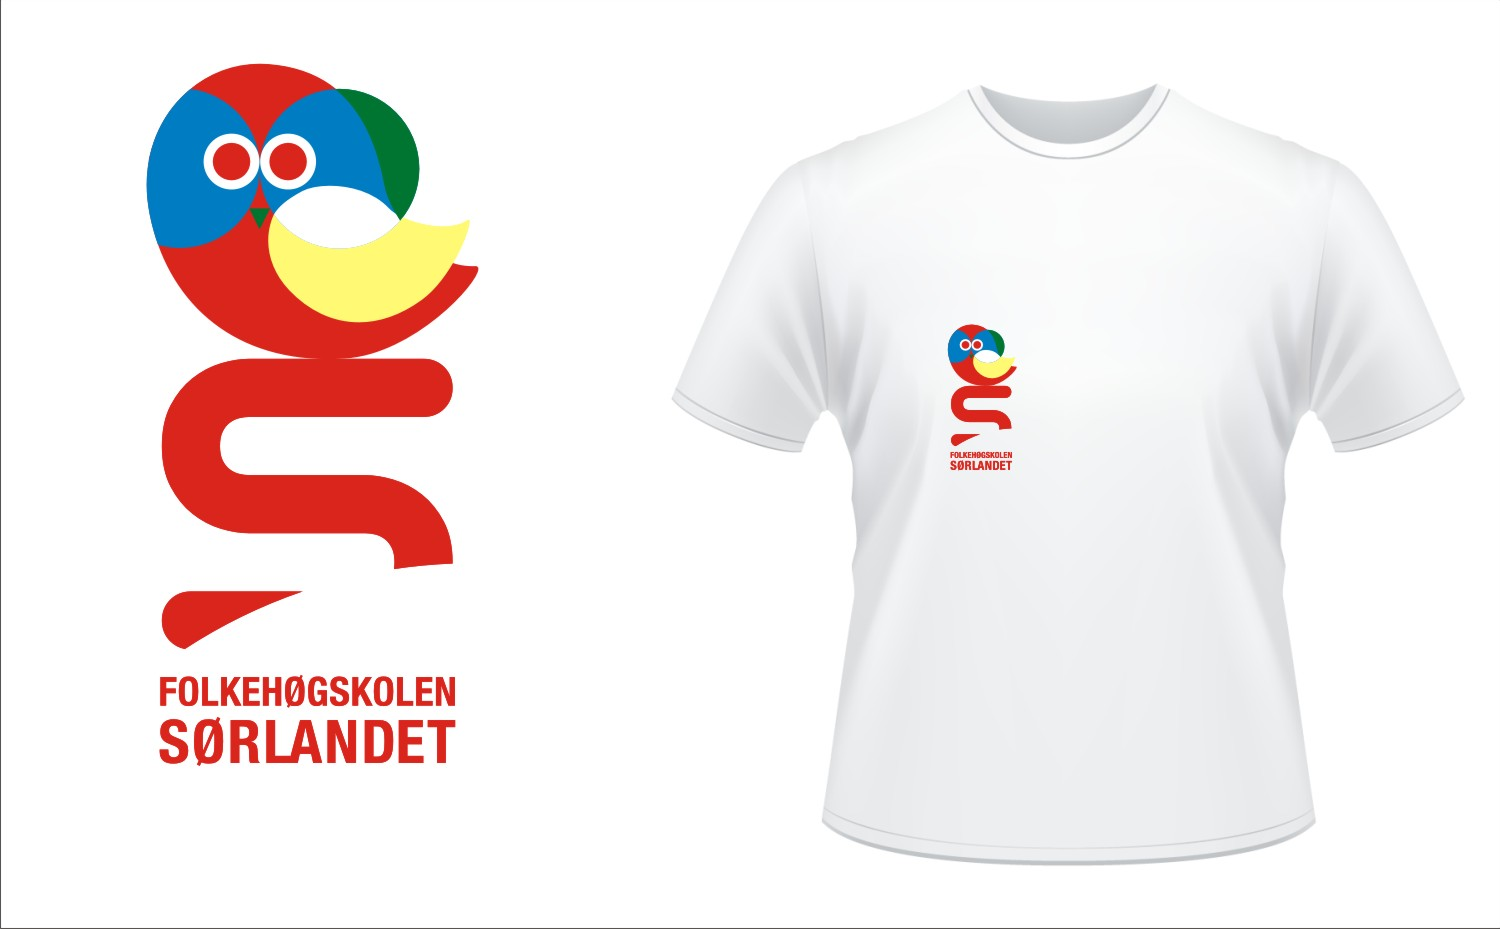 Playful Modern Education T Shirt Design For A Company By